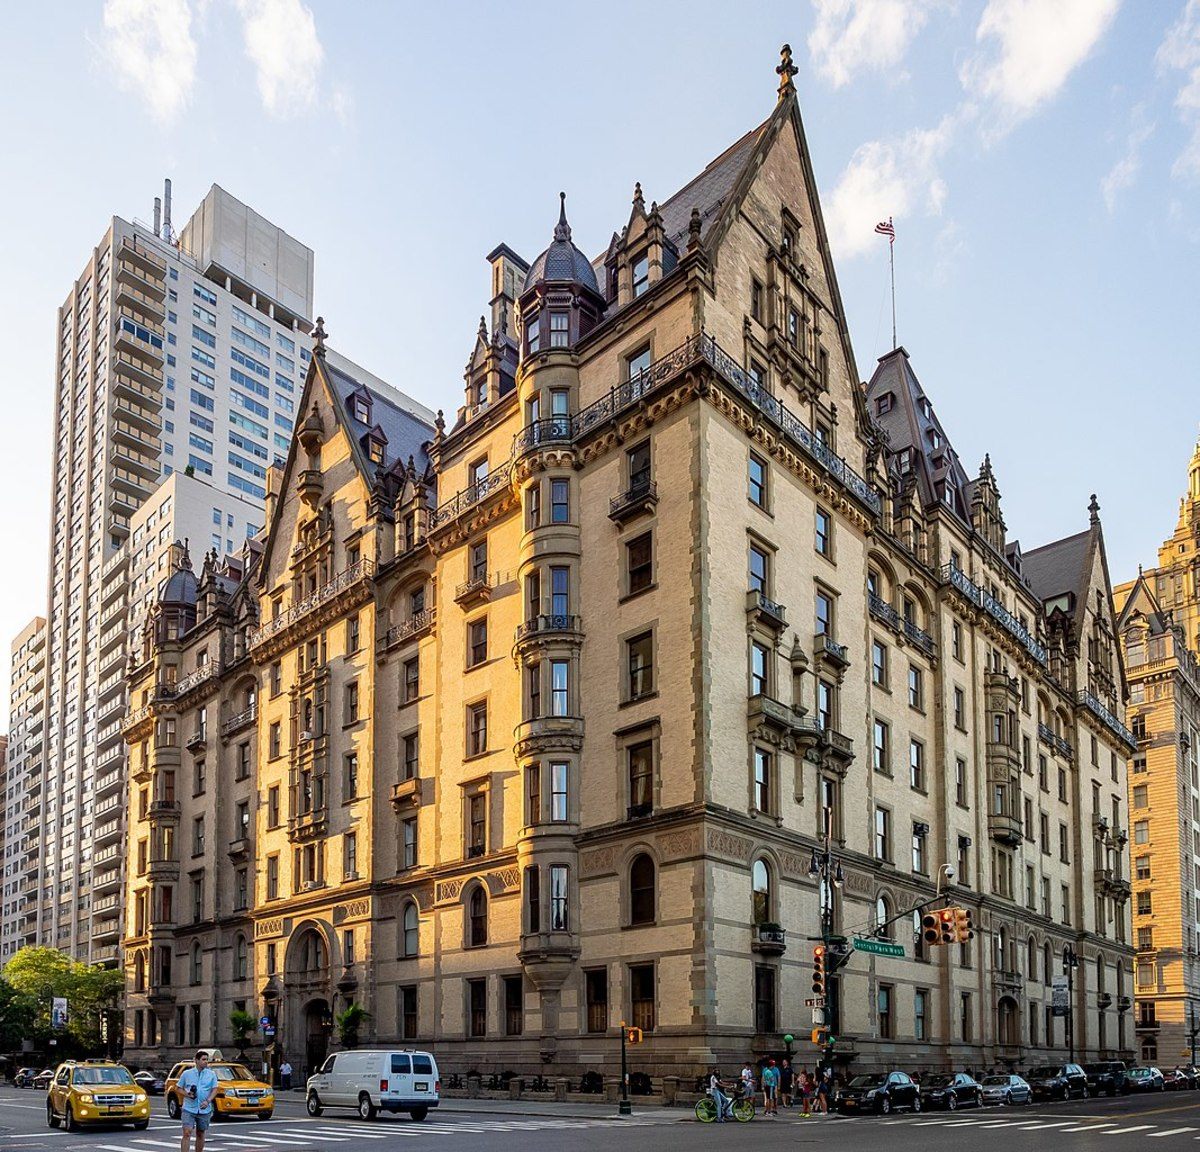 NYC's The Dakota, with its distinctive architectural features, was the perfect backdrop for The Bramford in Rosemary's Baby.